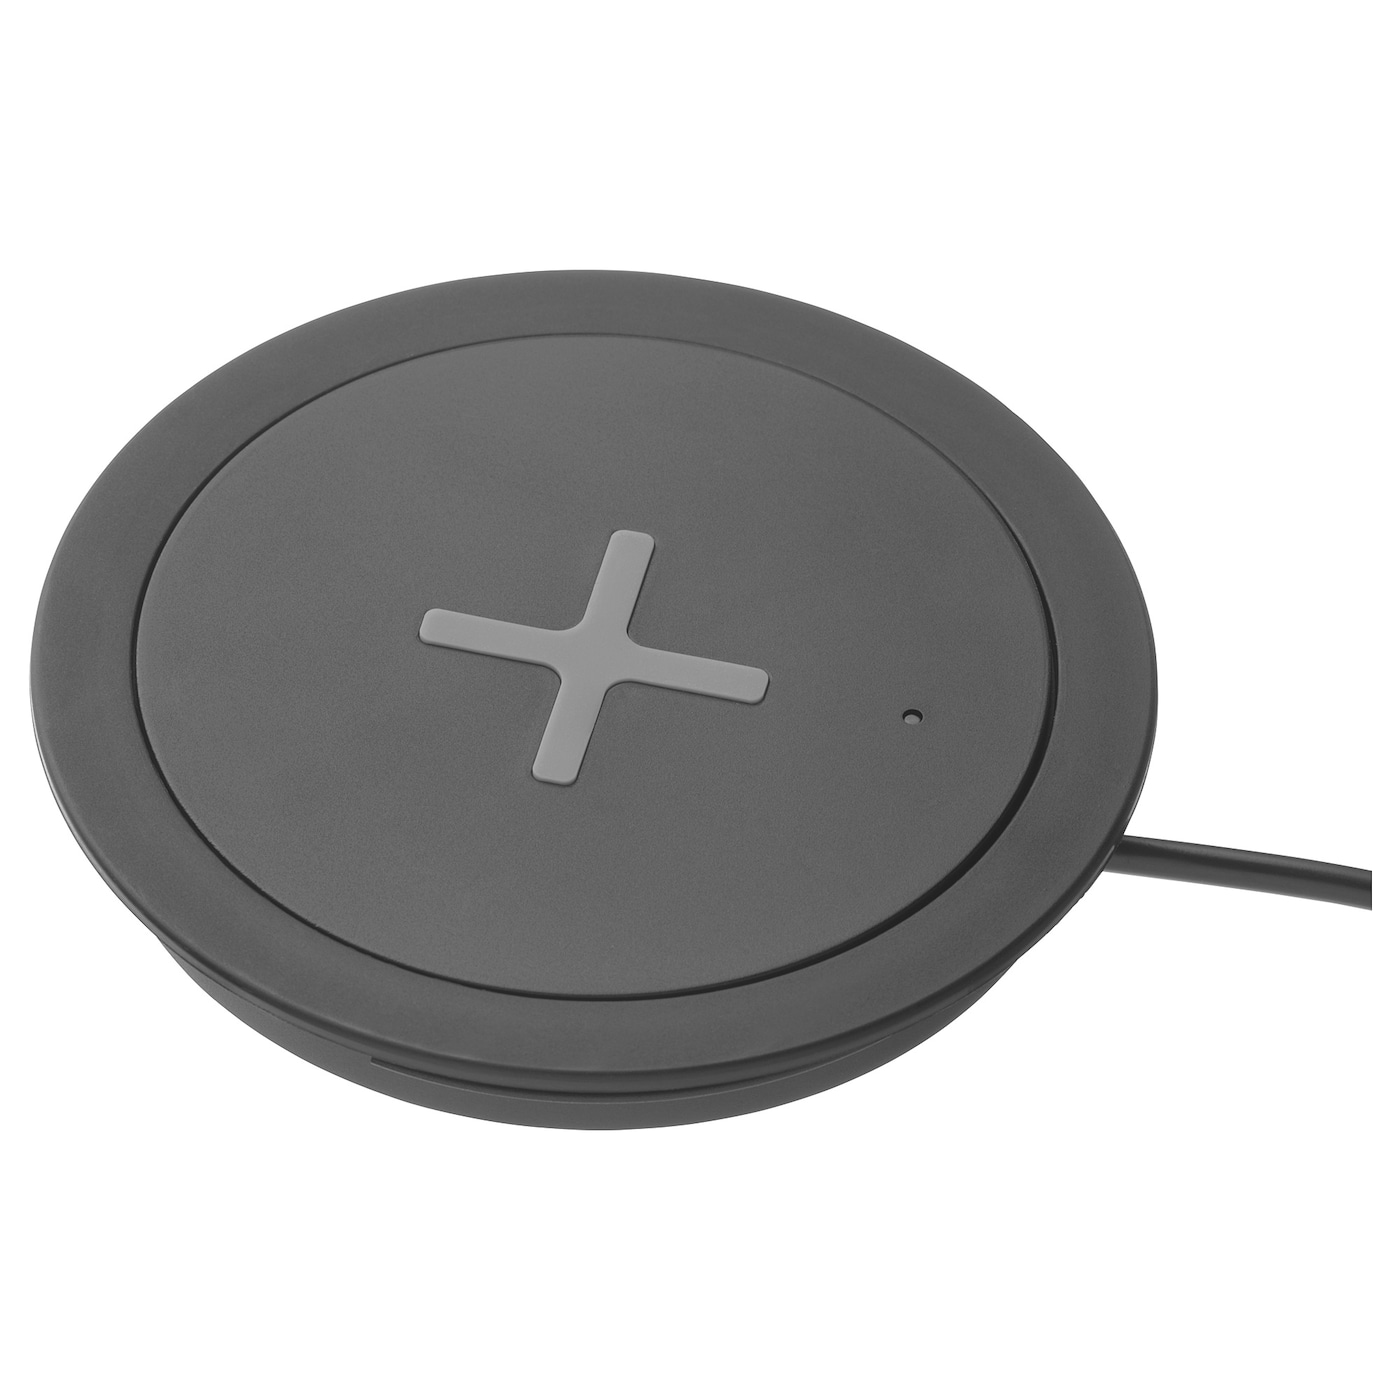 IKEA RÄLLEN integrated wireless charger